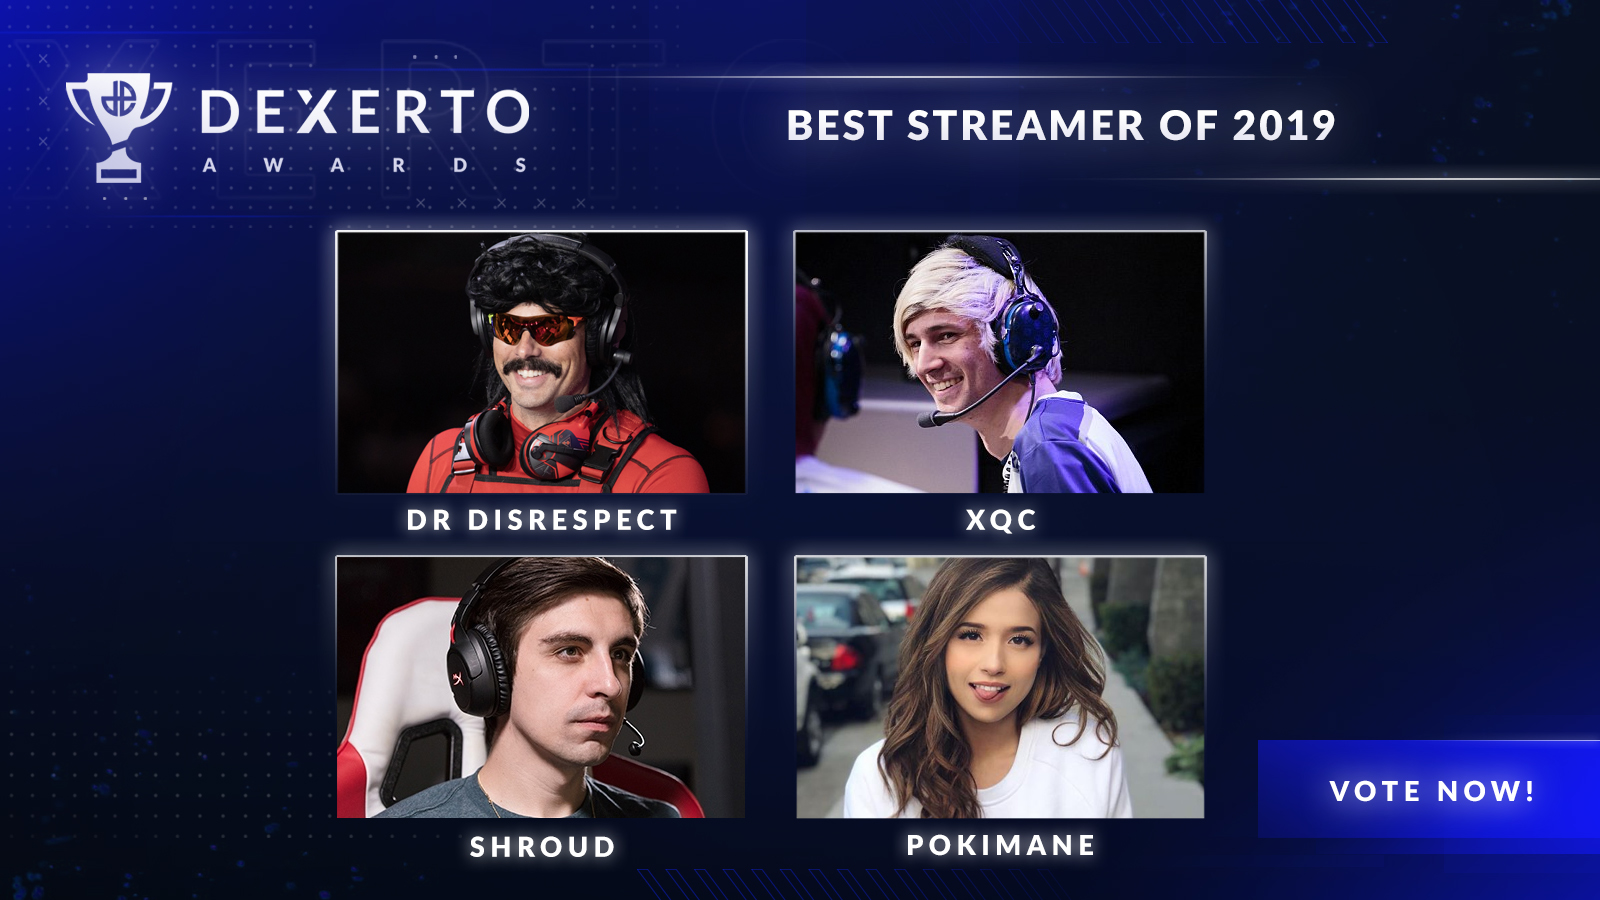 The best streamers of 2019 on Twitch and Mixer